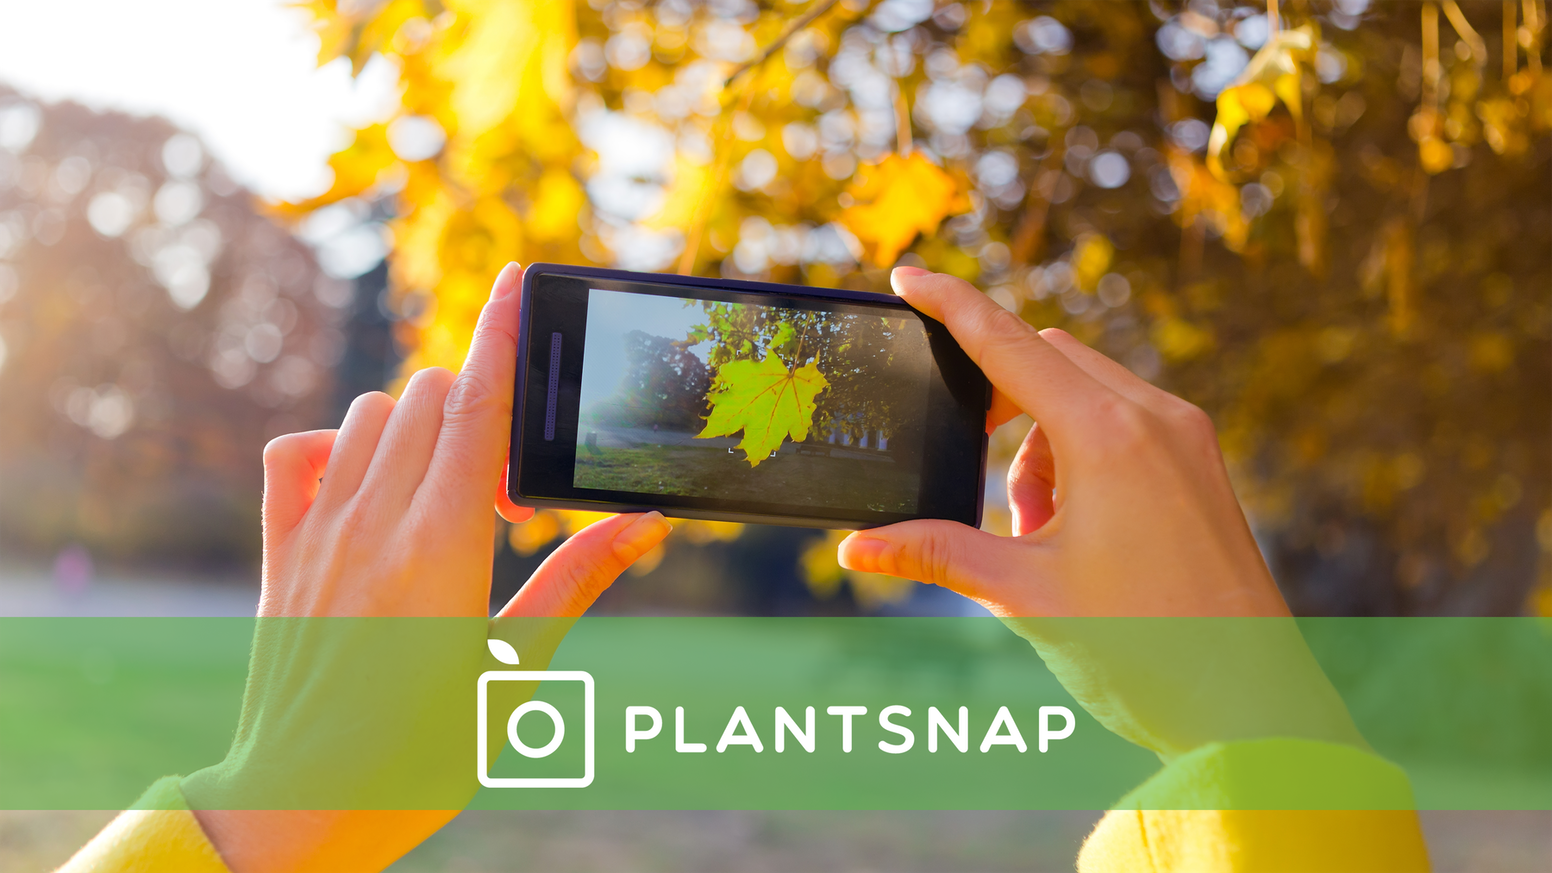 Join us in creating the PlantSnap mobile app! Snap a photo of a plant, flower, or tree, and PlantSnap tells you what it is!